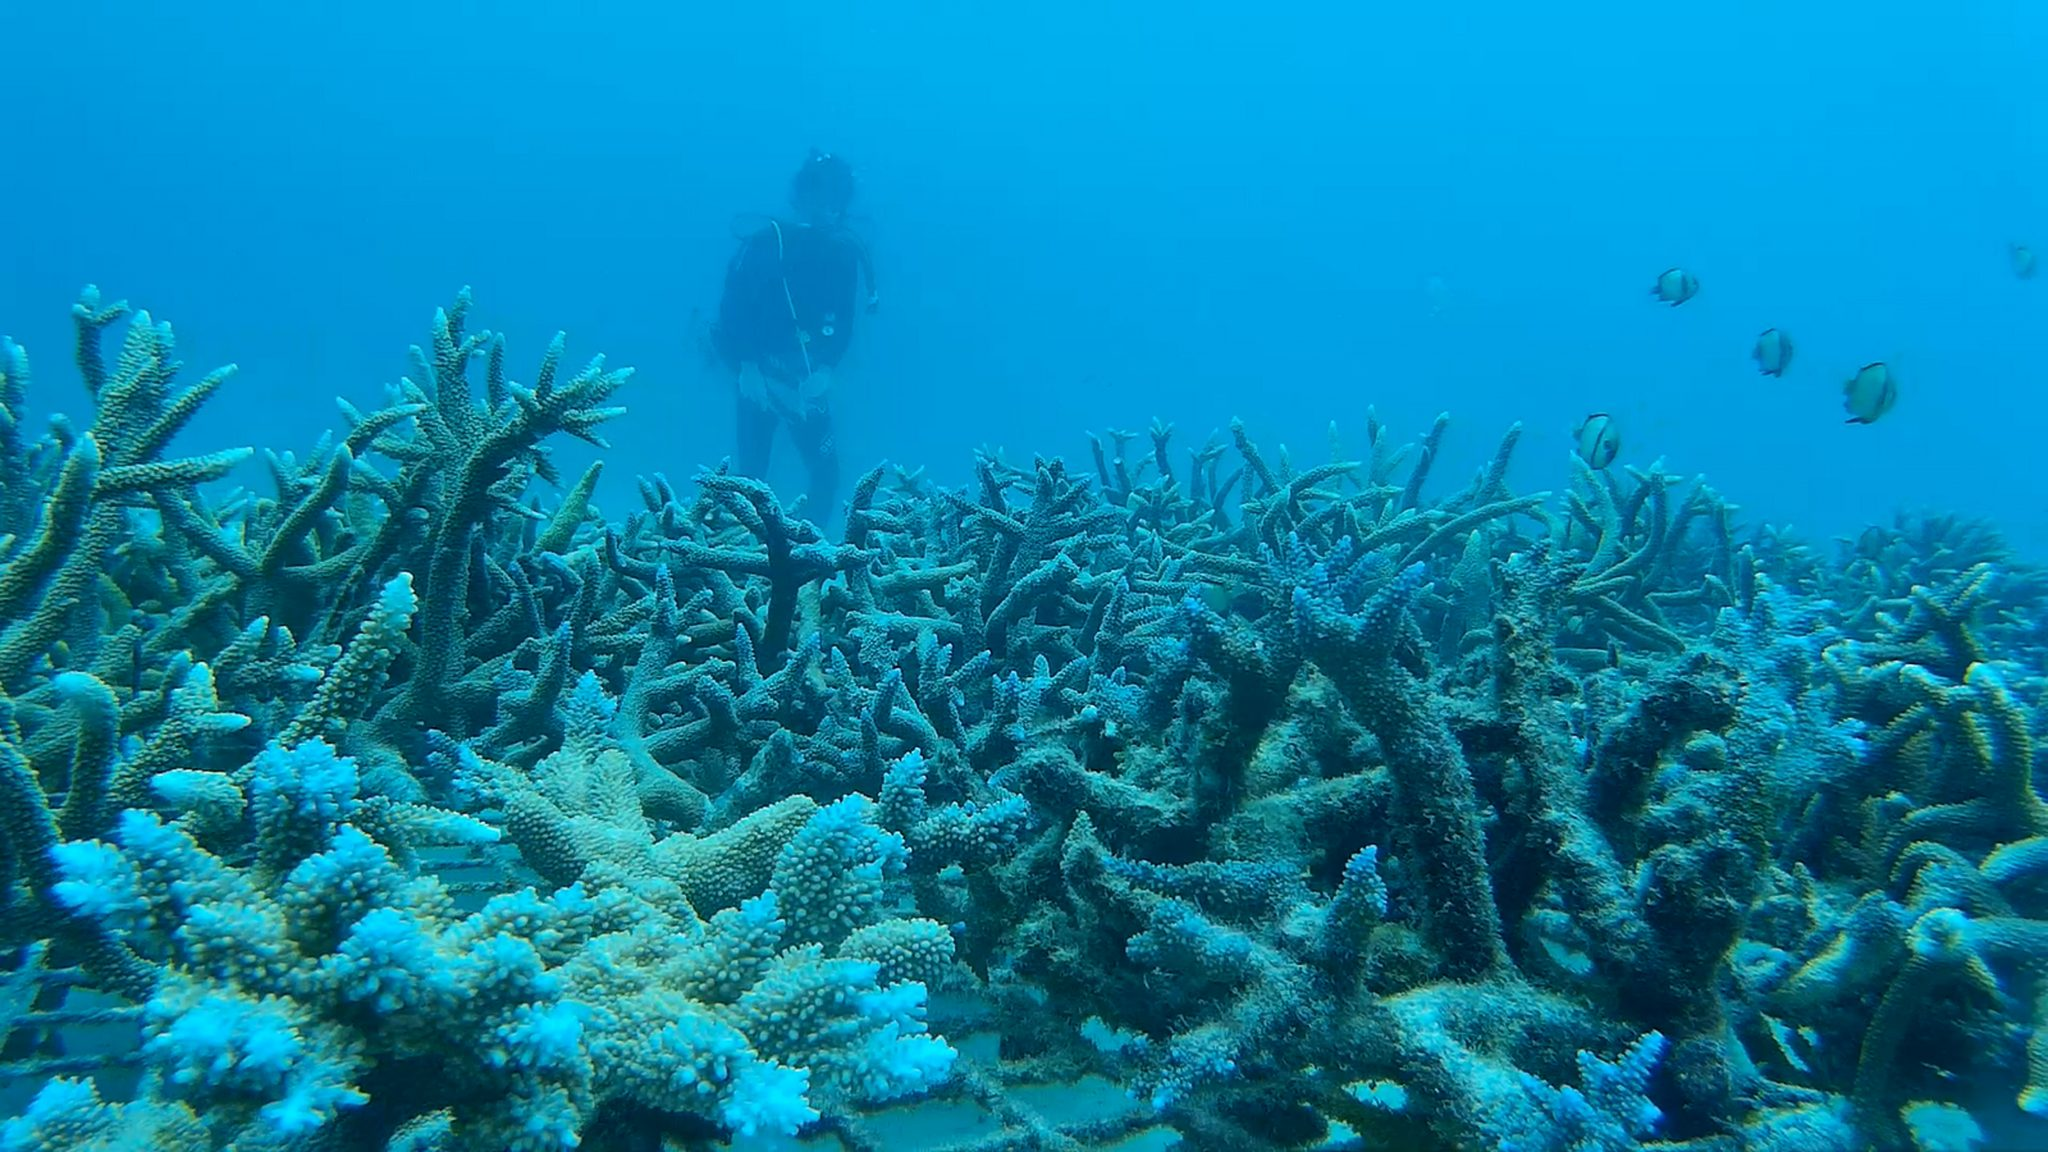 marine conservation diving in vanuatu - Marine Conservation in Vanuatu Review